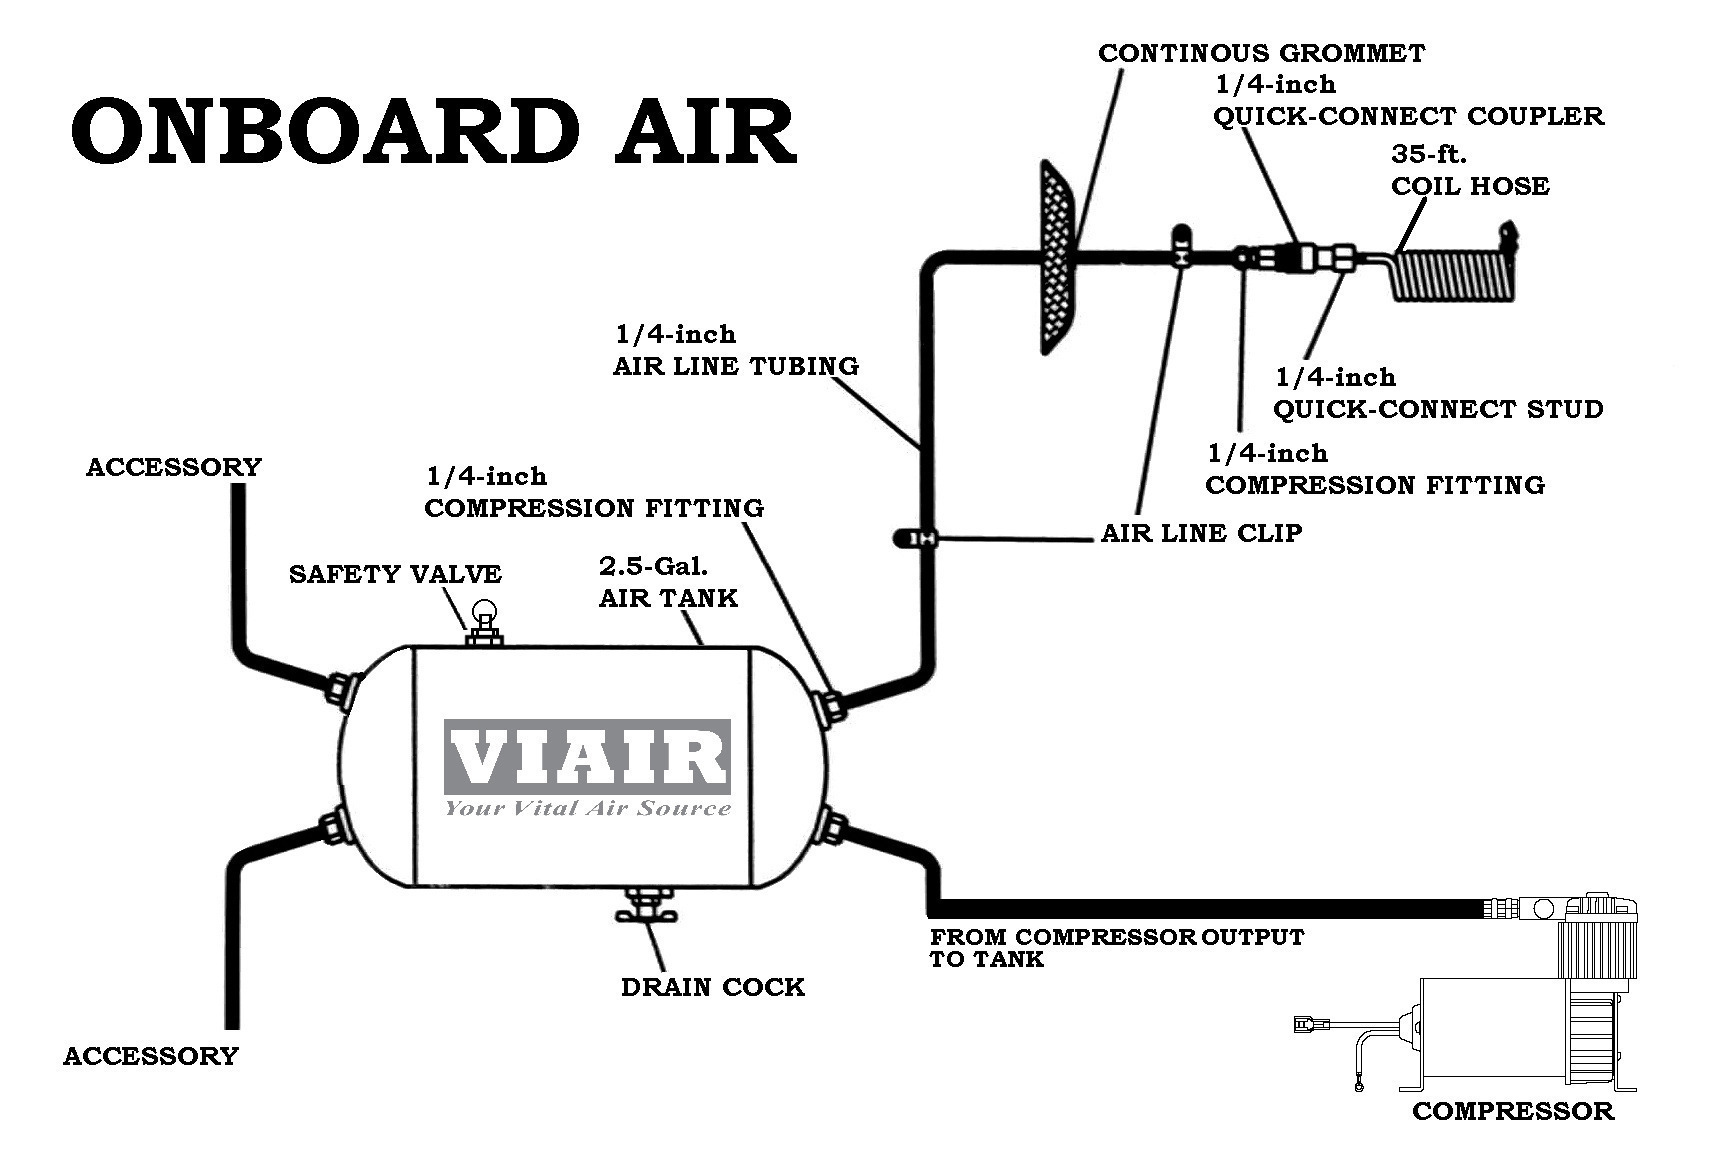 onboard_air viair compressor wiring diagram efcaviation com hornblasters wiring diagram at virtualis.co